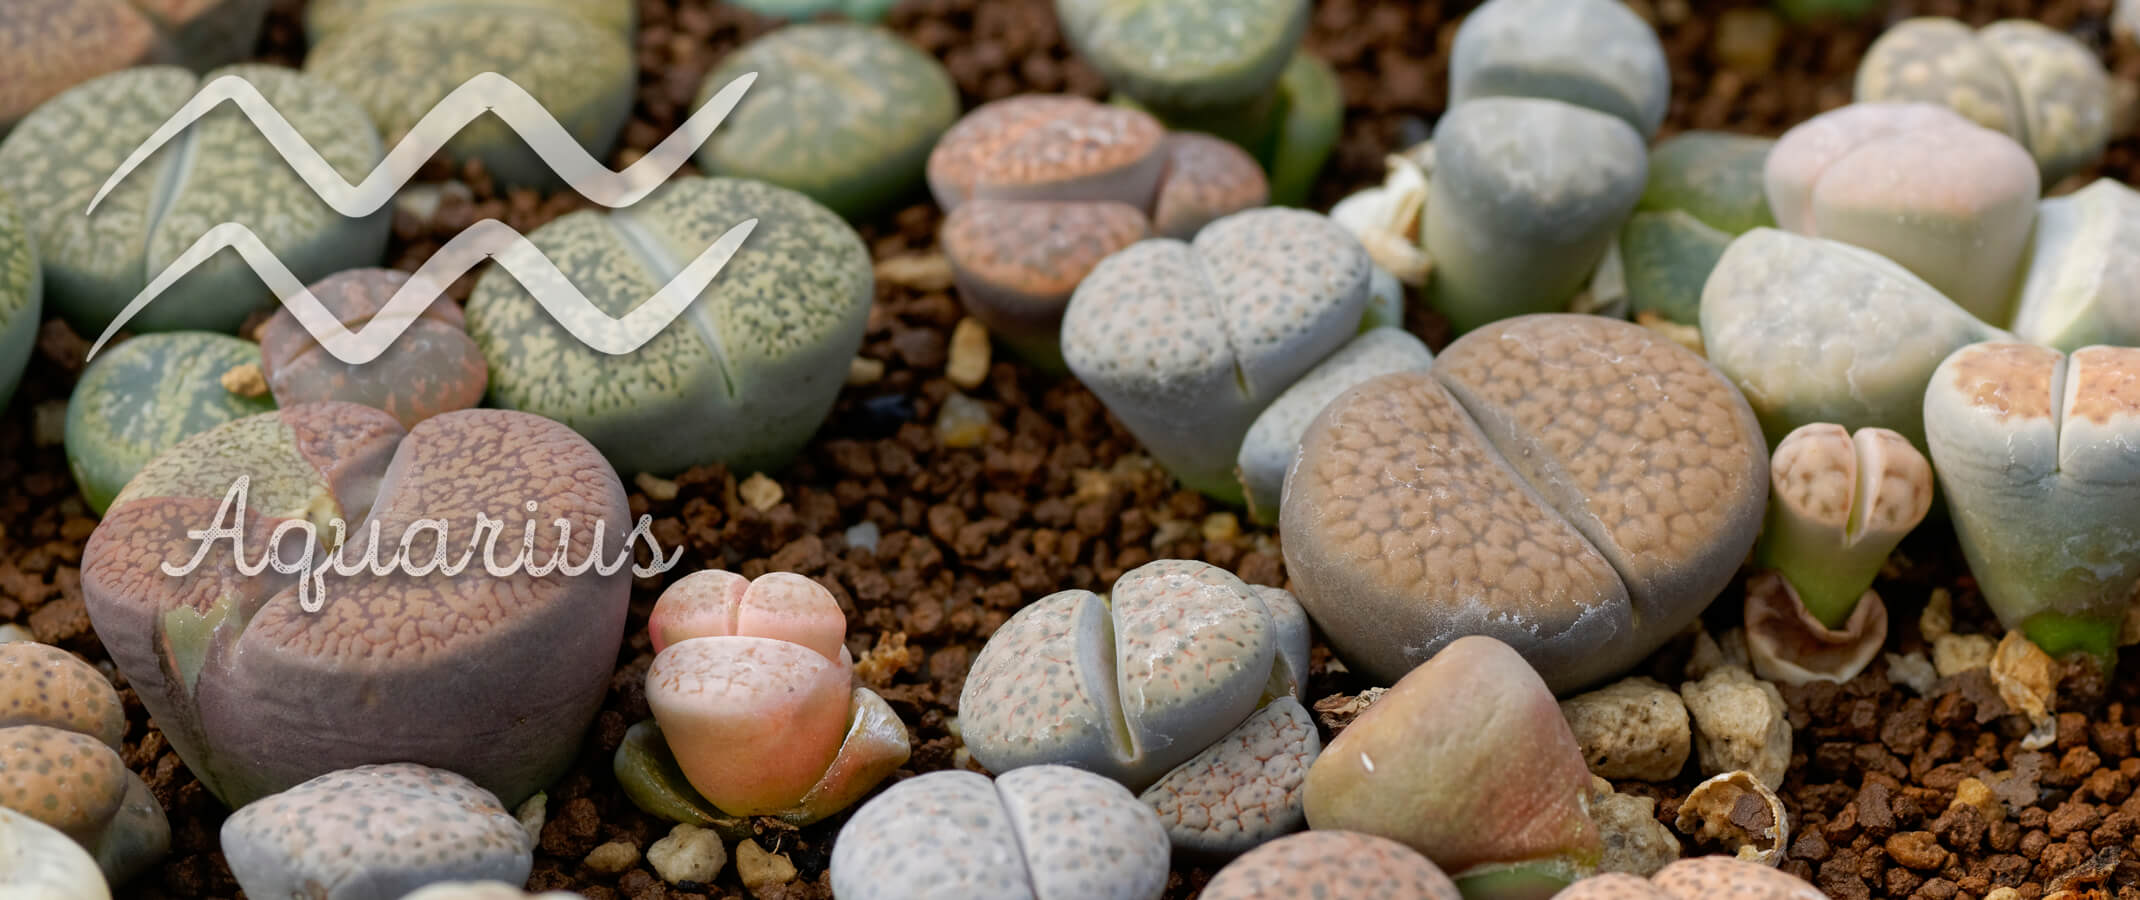 succulents with the aquarius symbol and word on the image